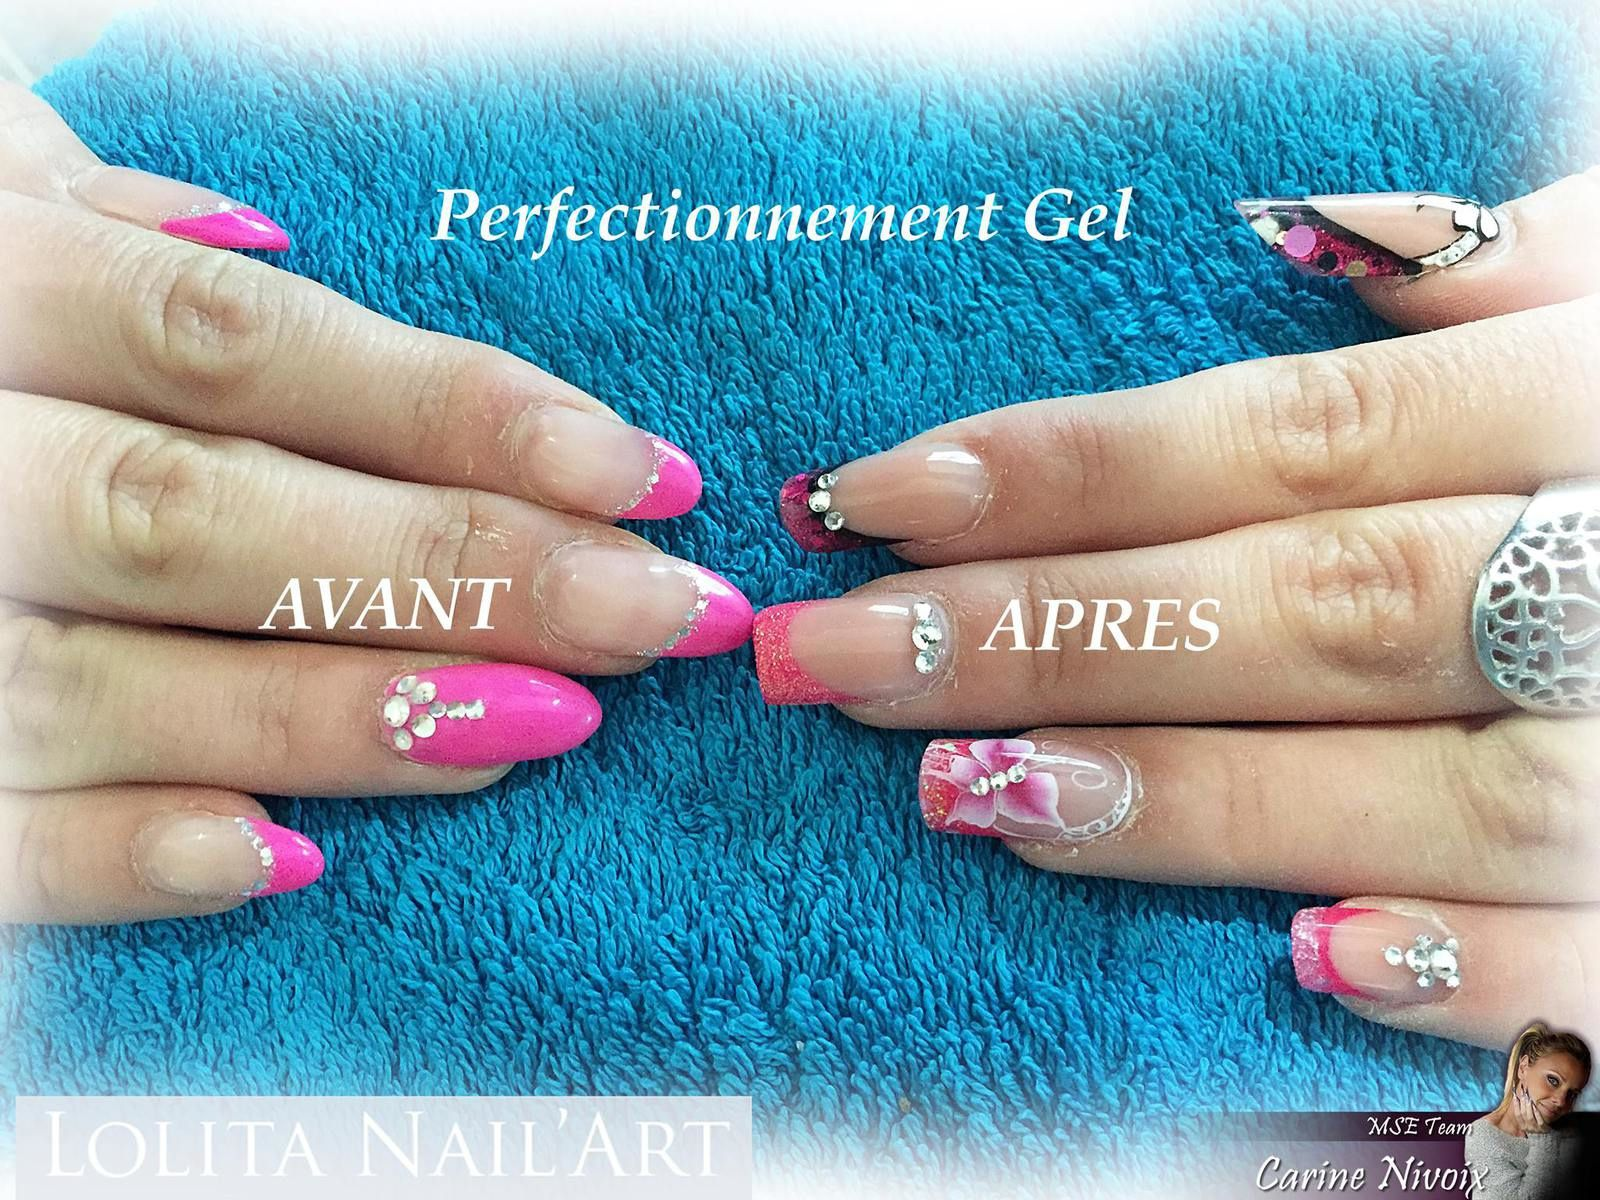 Perfectionnement Gel